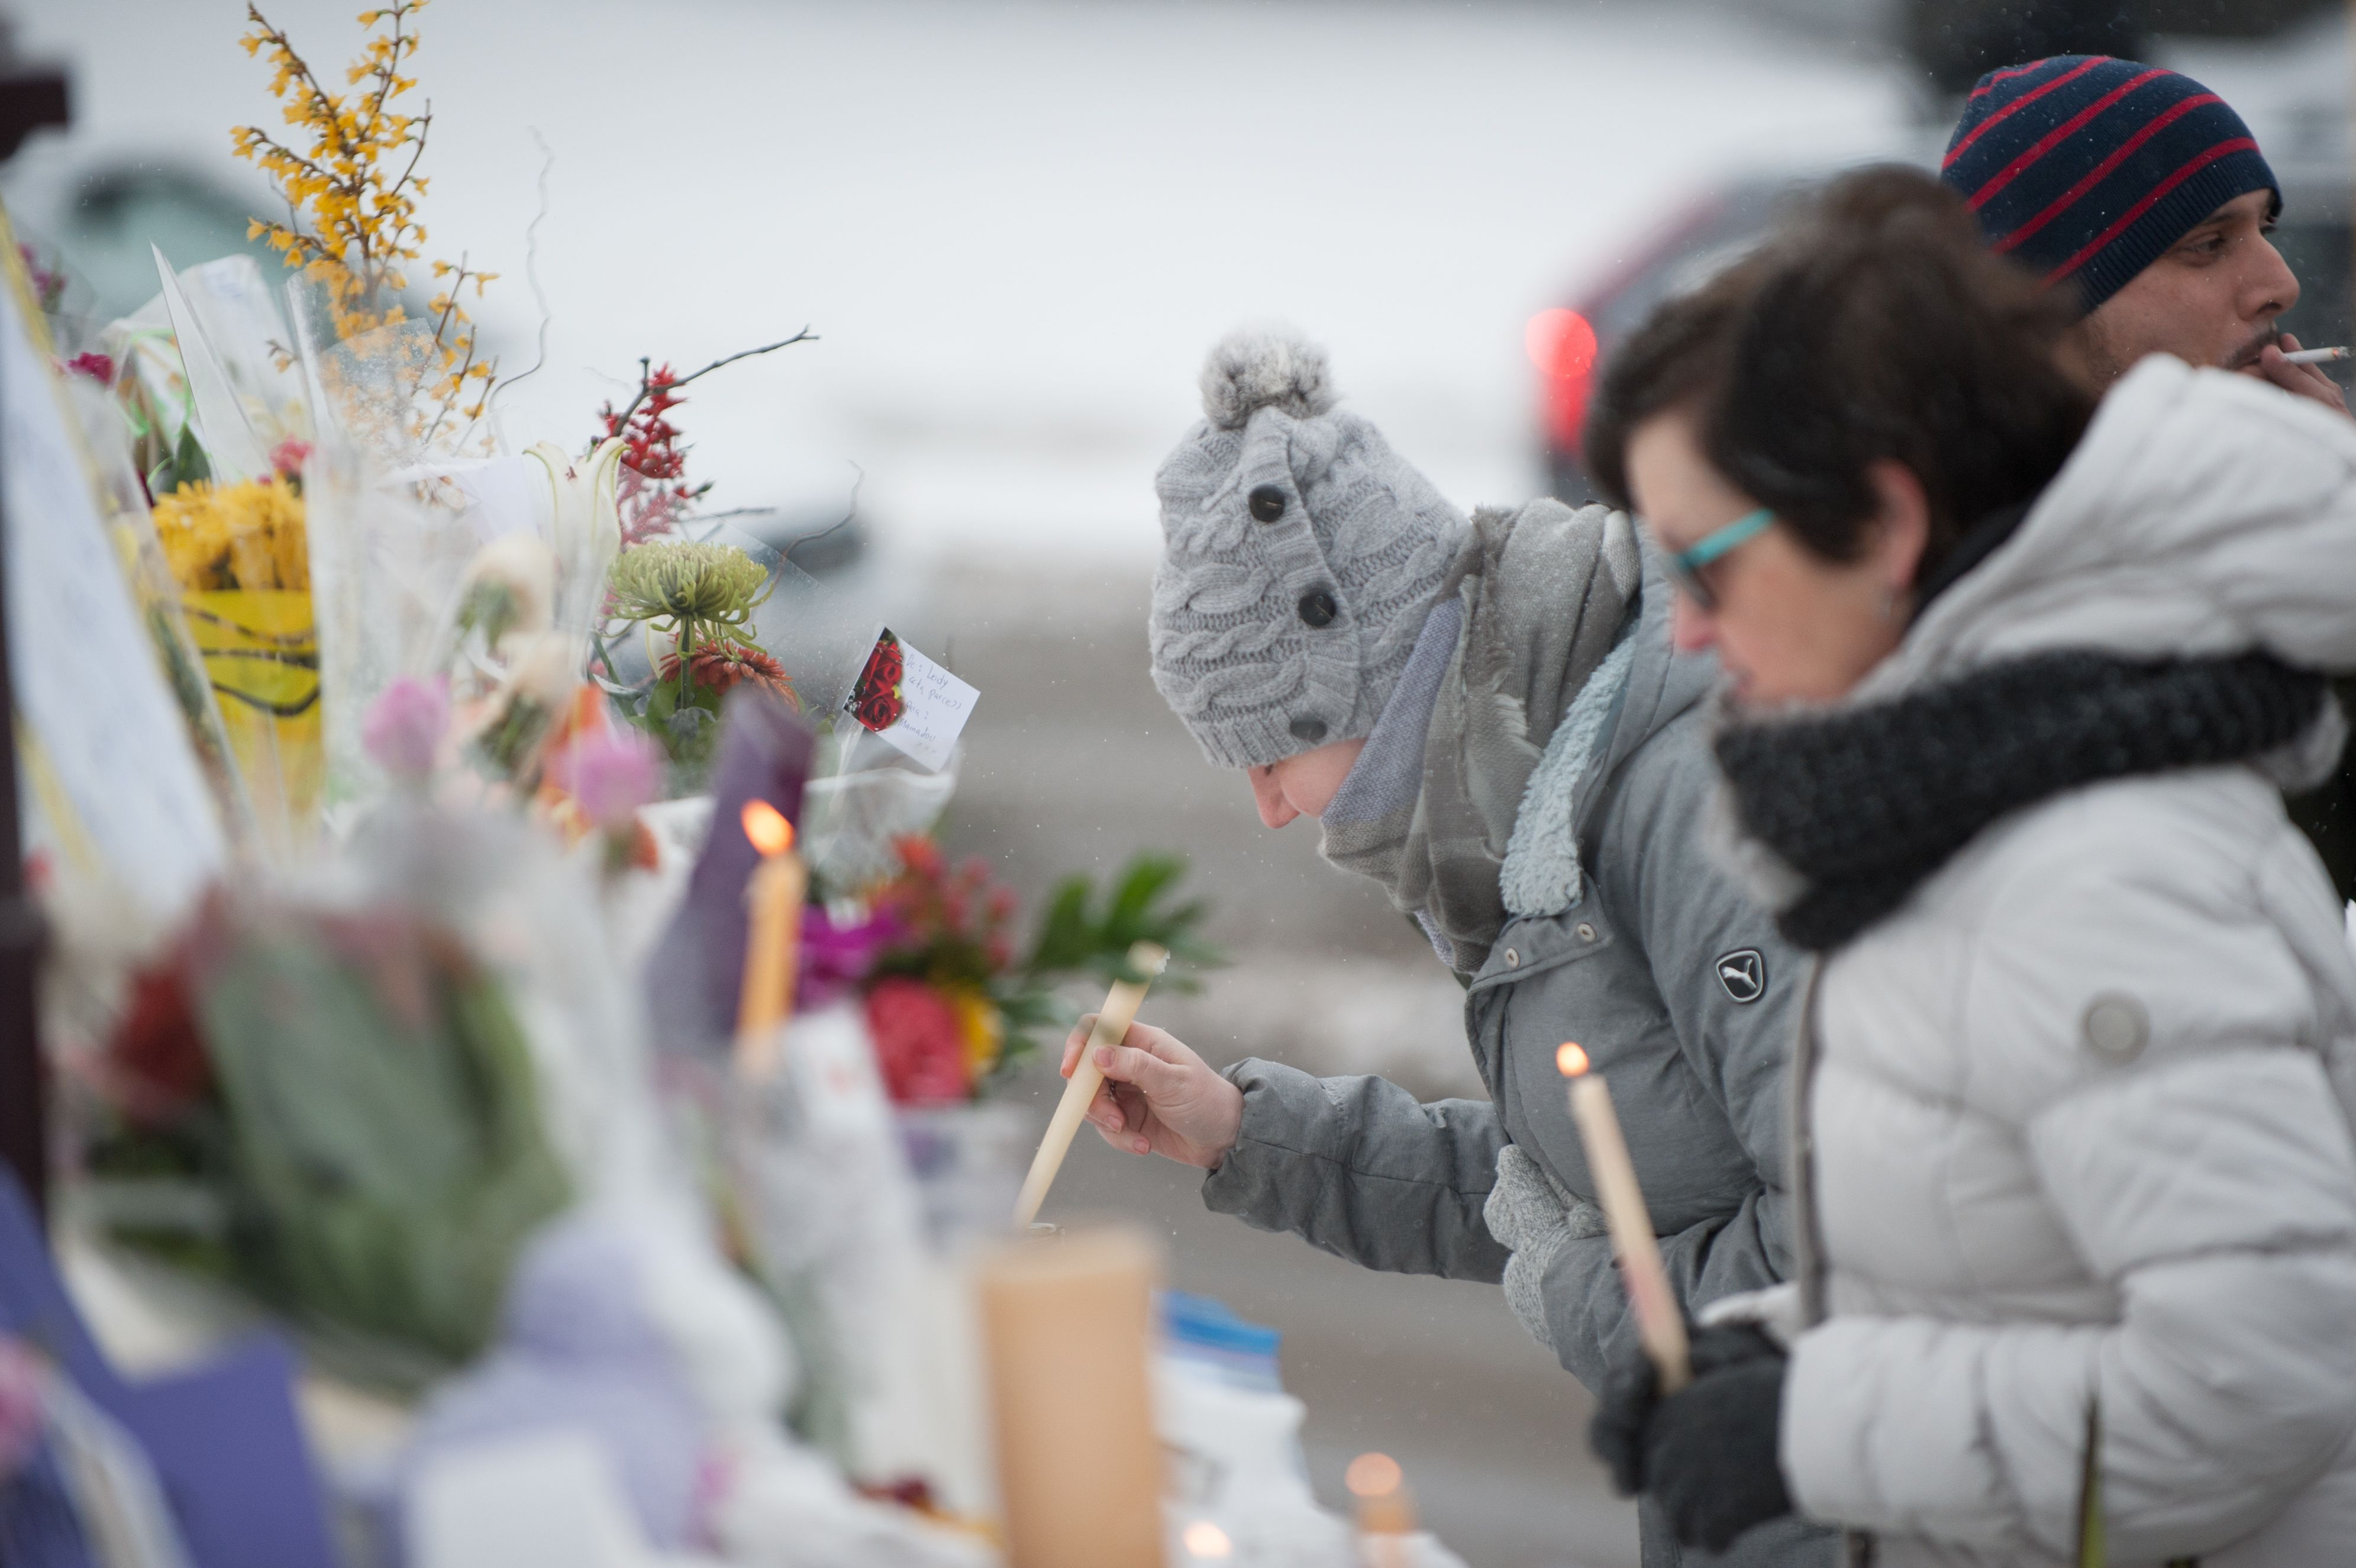 People visit a makeshift memorial near a mosque that was the location of a shooting spree in Quebec City, on Feb. 1, 2017.